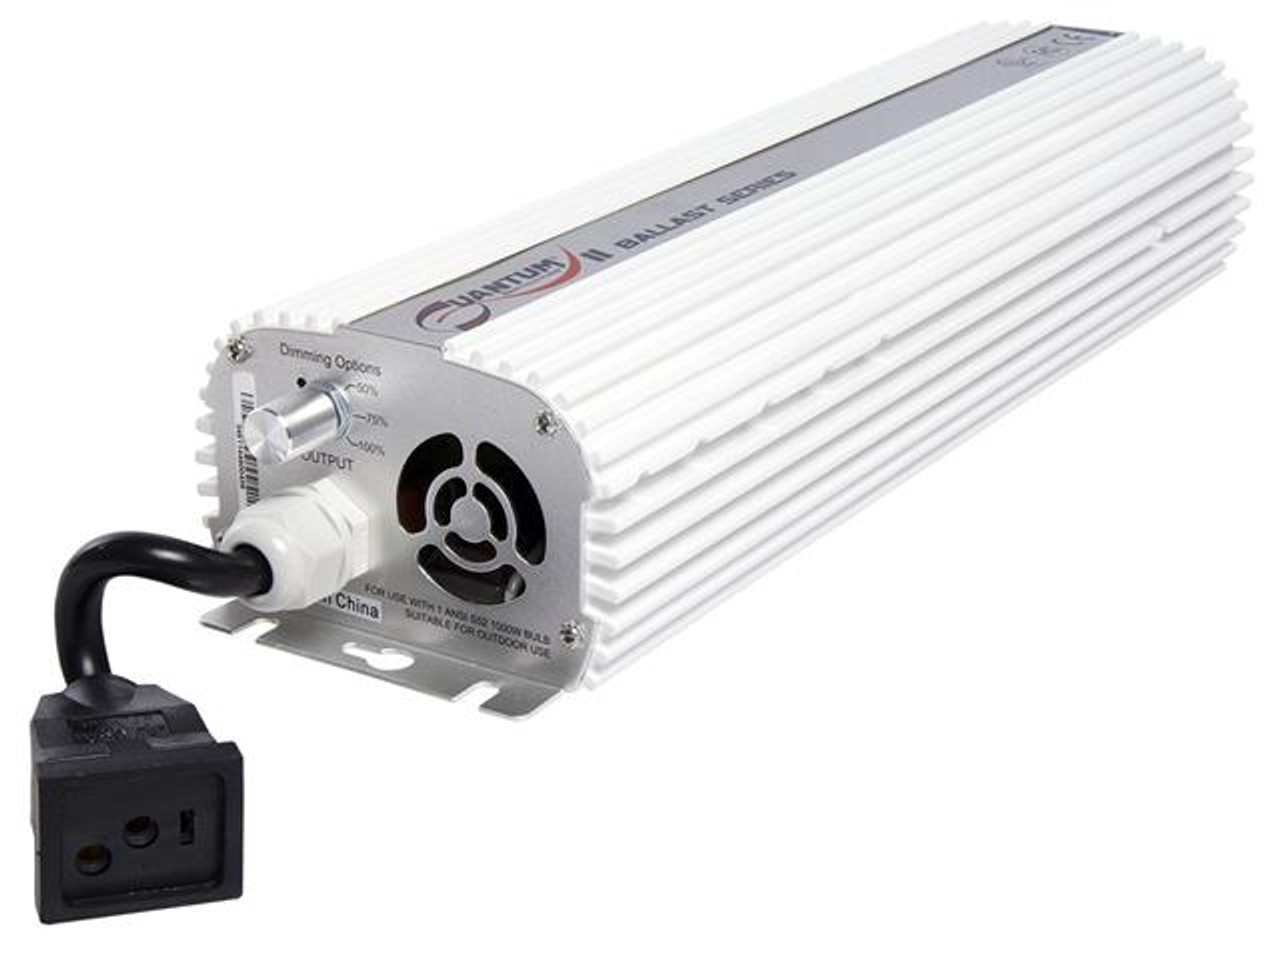 Quantum - 1000W Digital Ballast, 120/240V Dimmable